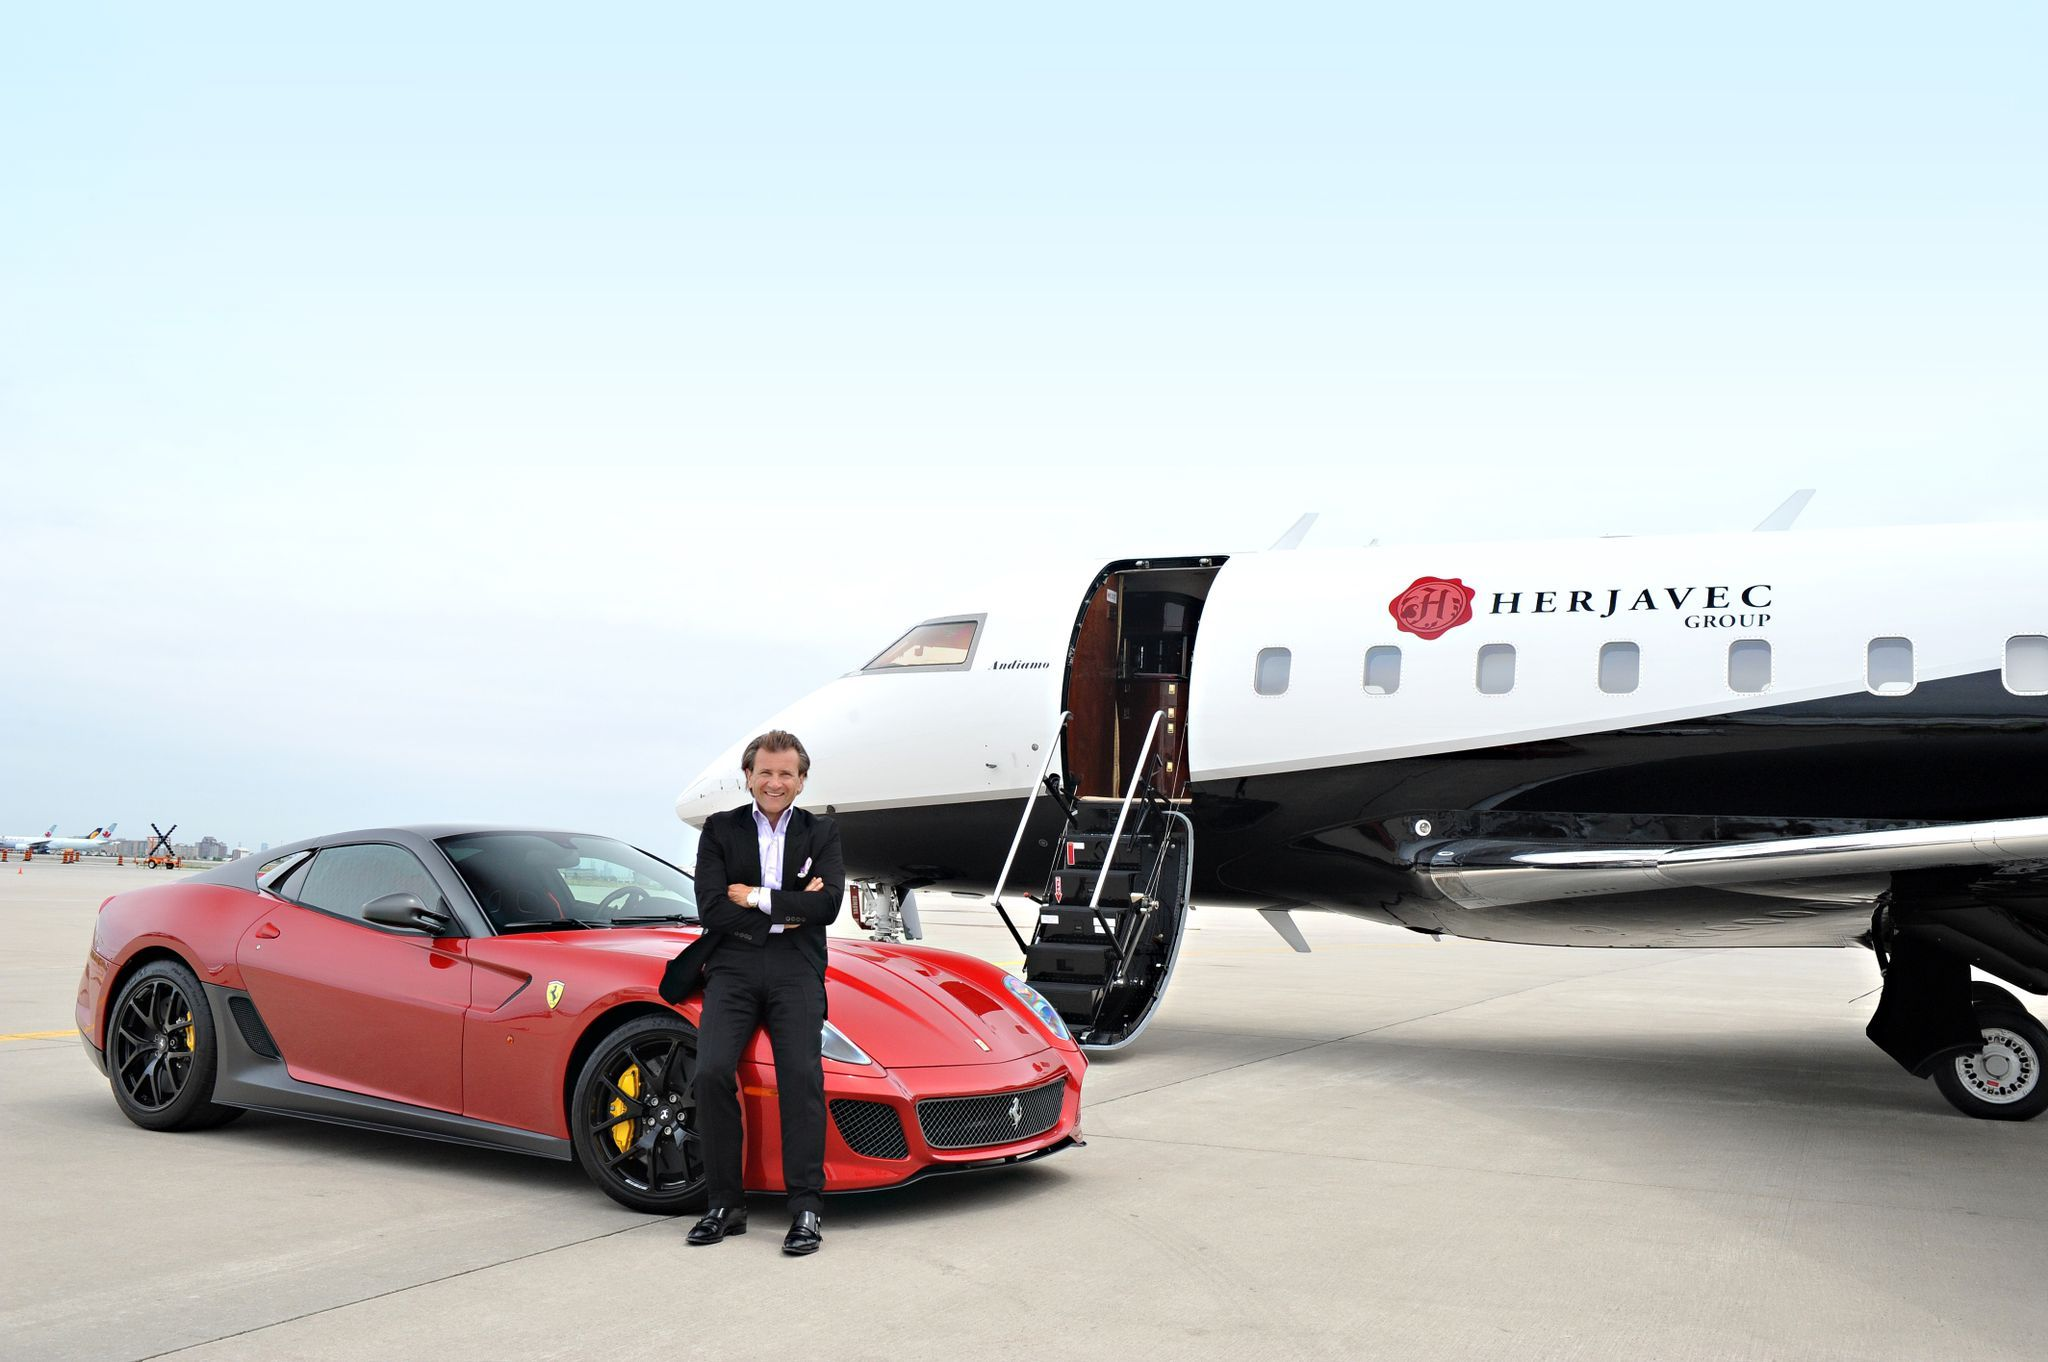 Robert Herjavec Founded The Herjavec Group Thg In 2003 Delivering